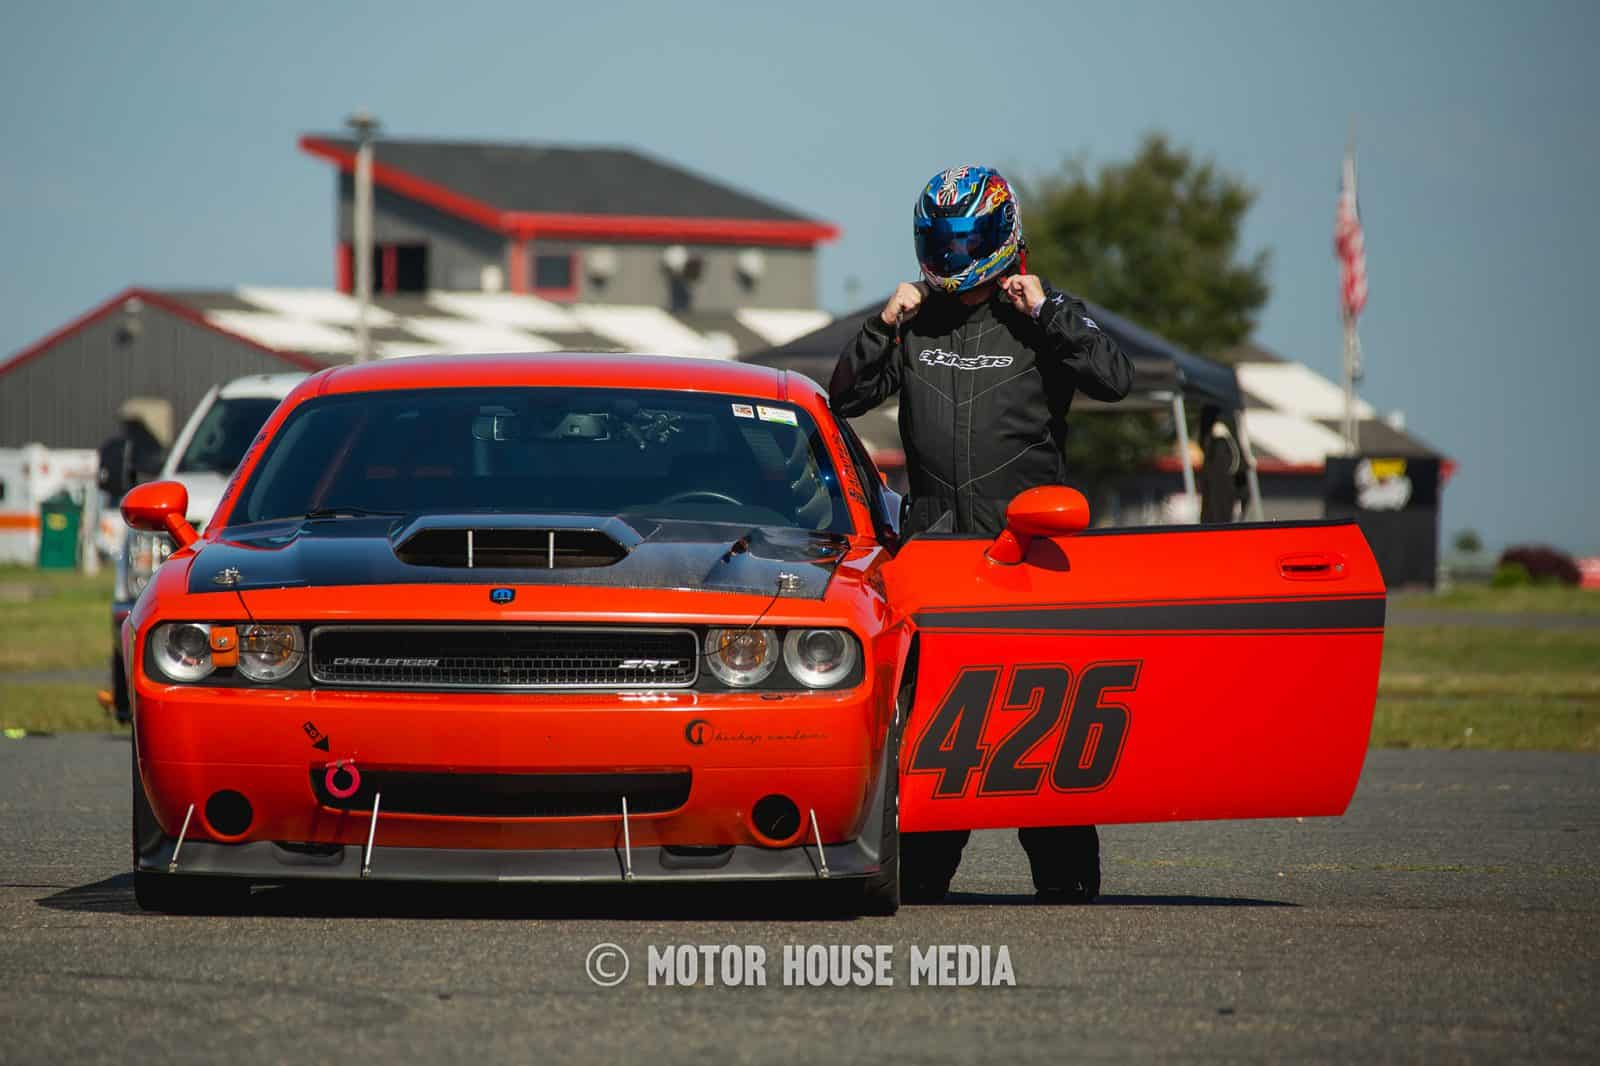 The Speed Mafia getting into their Dodge Challenger